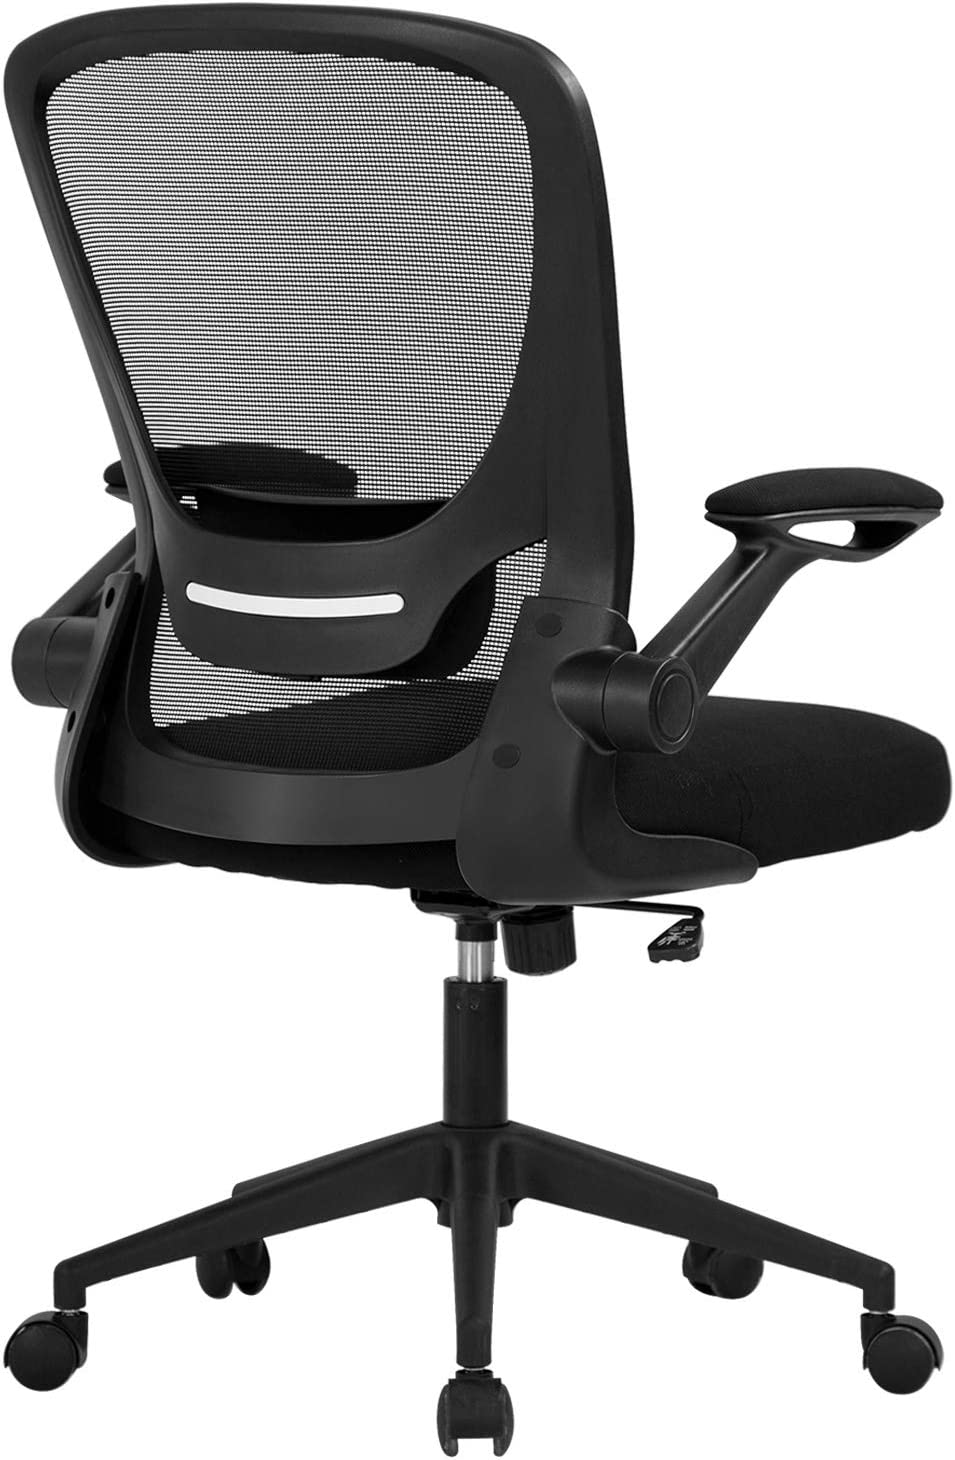 Home Office Chair Ergonomic Mesh Swive Computer Desk Super popular specialty store In a popularity